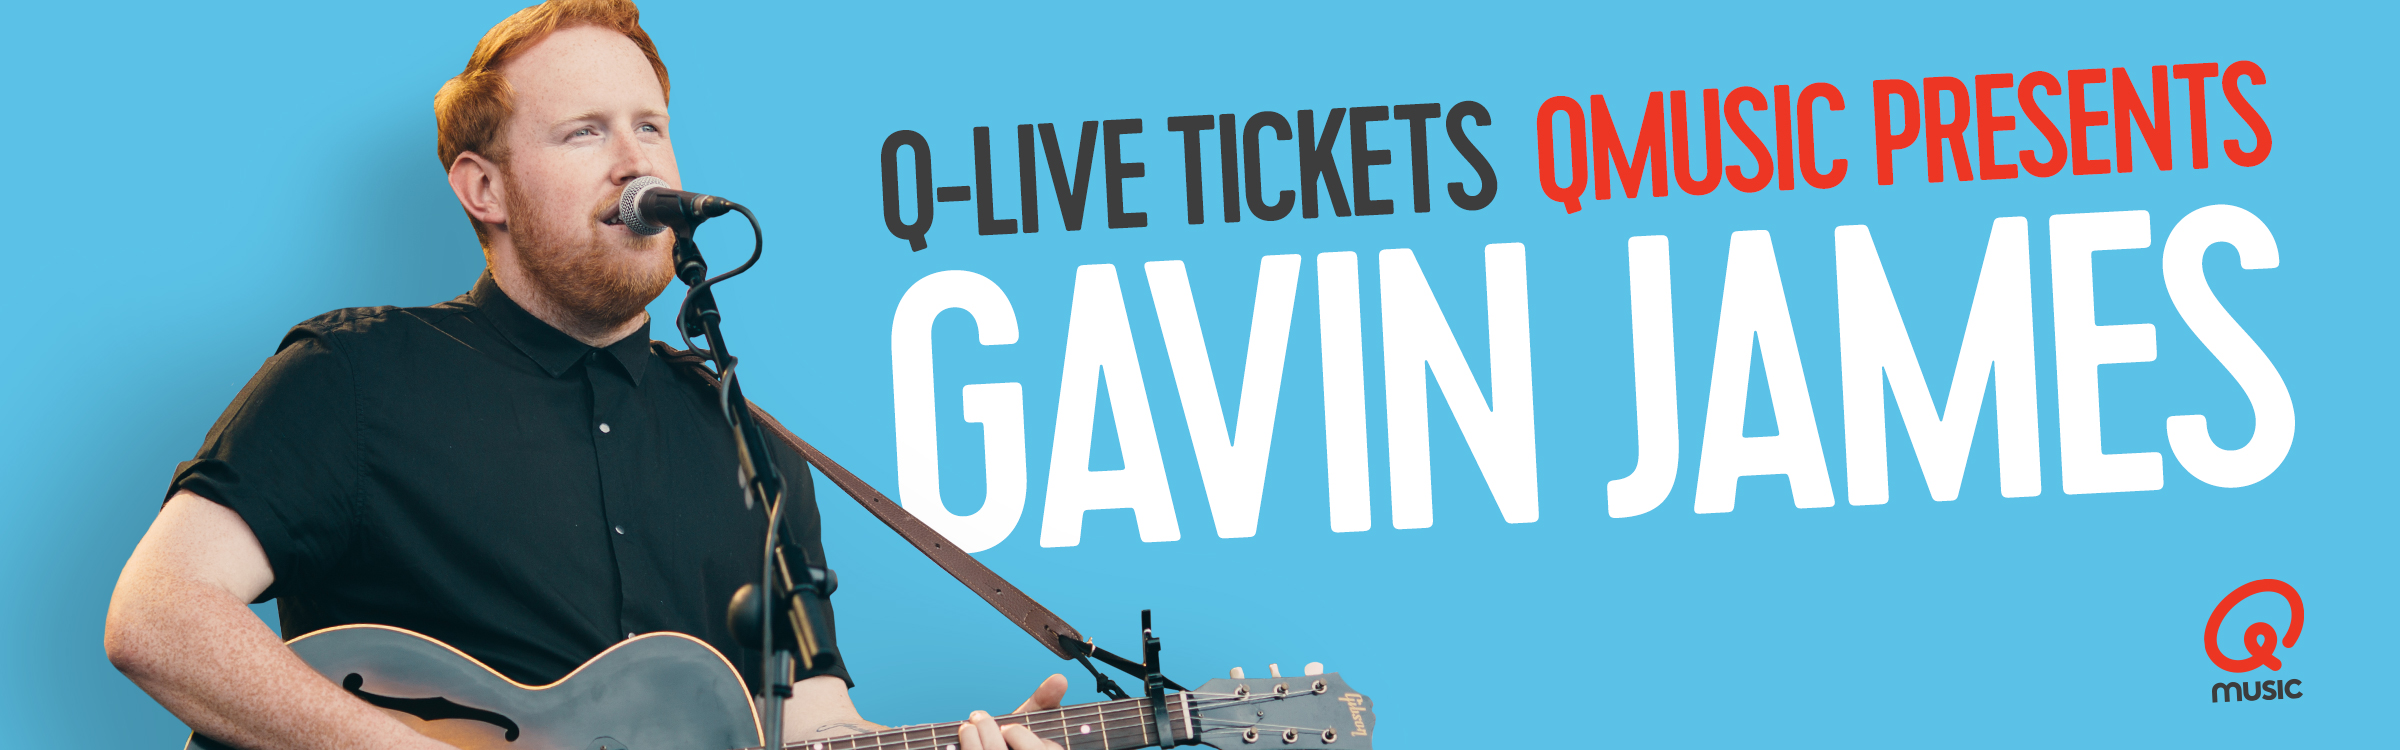 Qmusic actionheader gavin